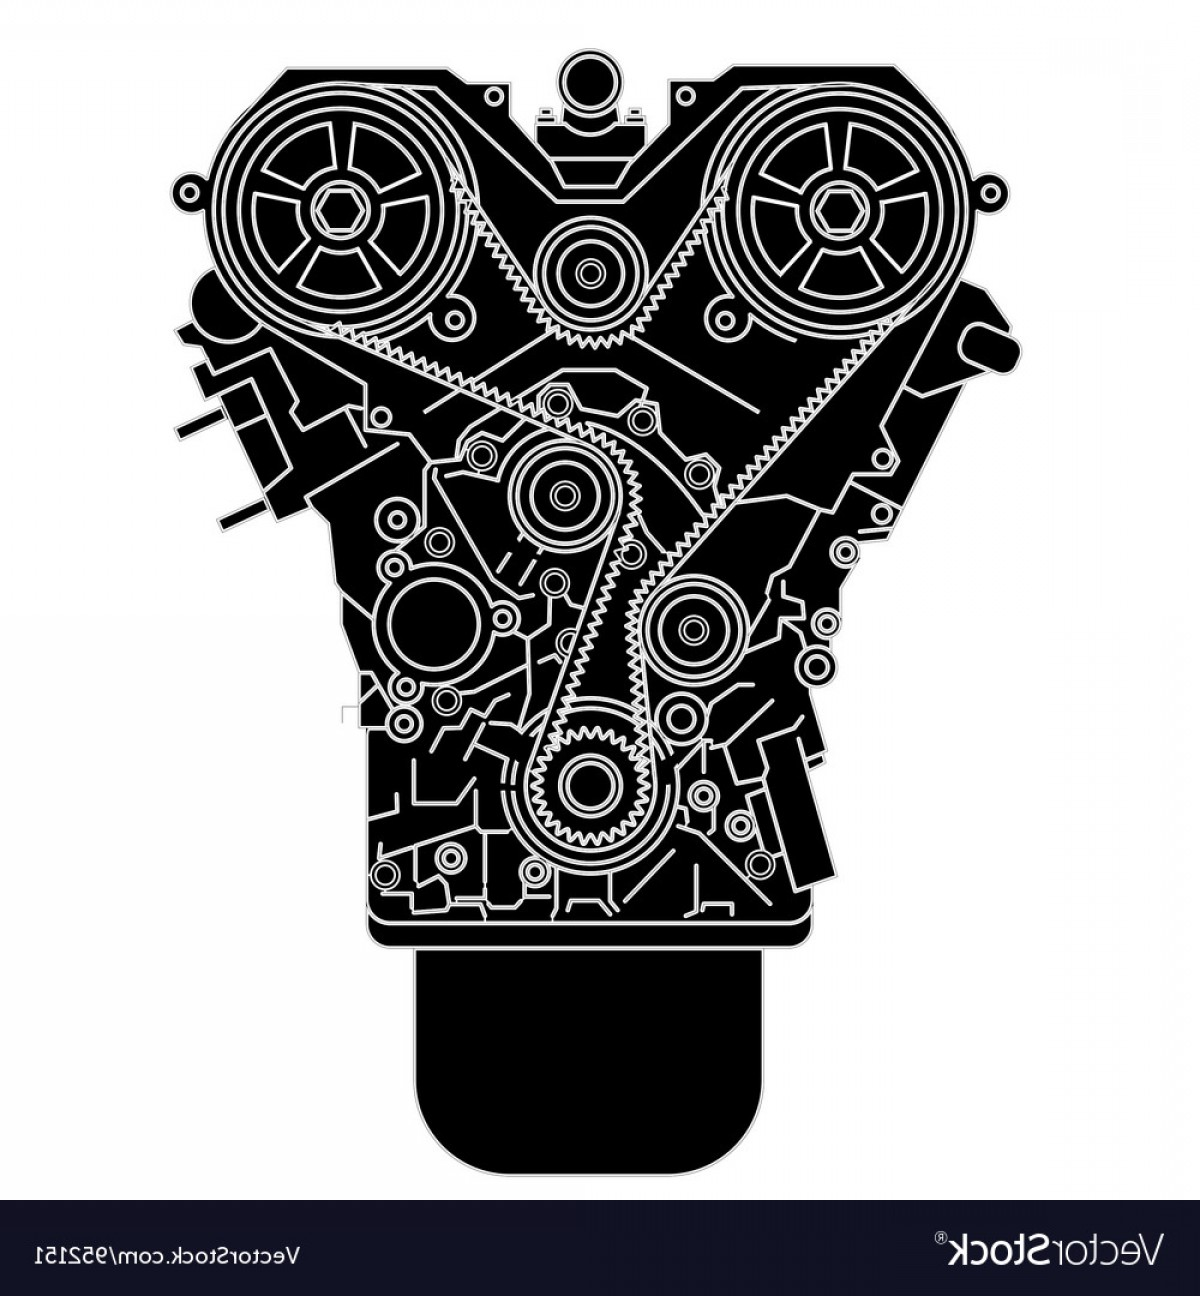 Combustible Engine Vector: Internal Combustion Engine As Seen From In Front Vector